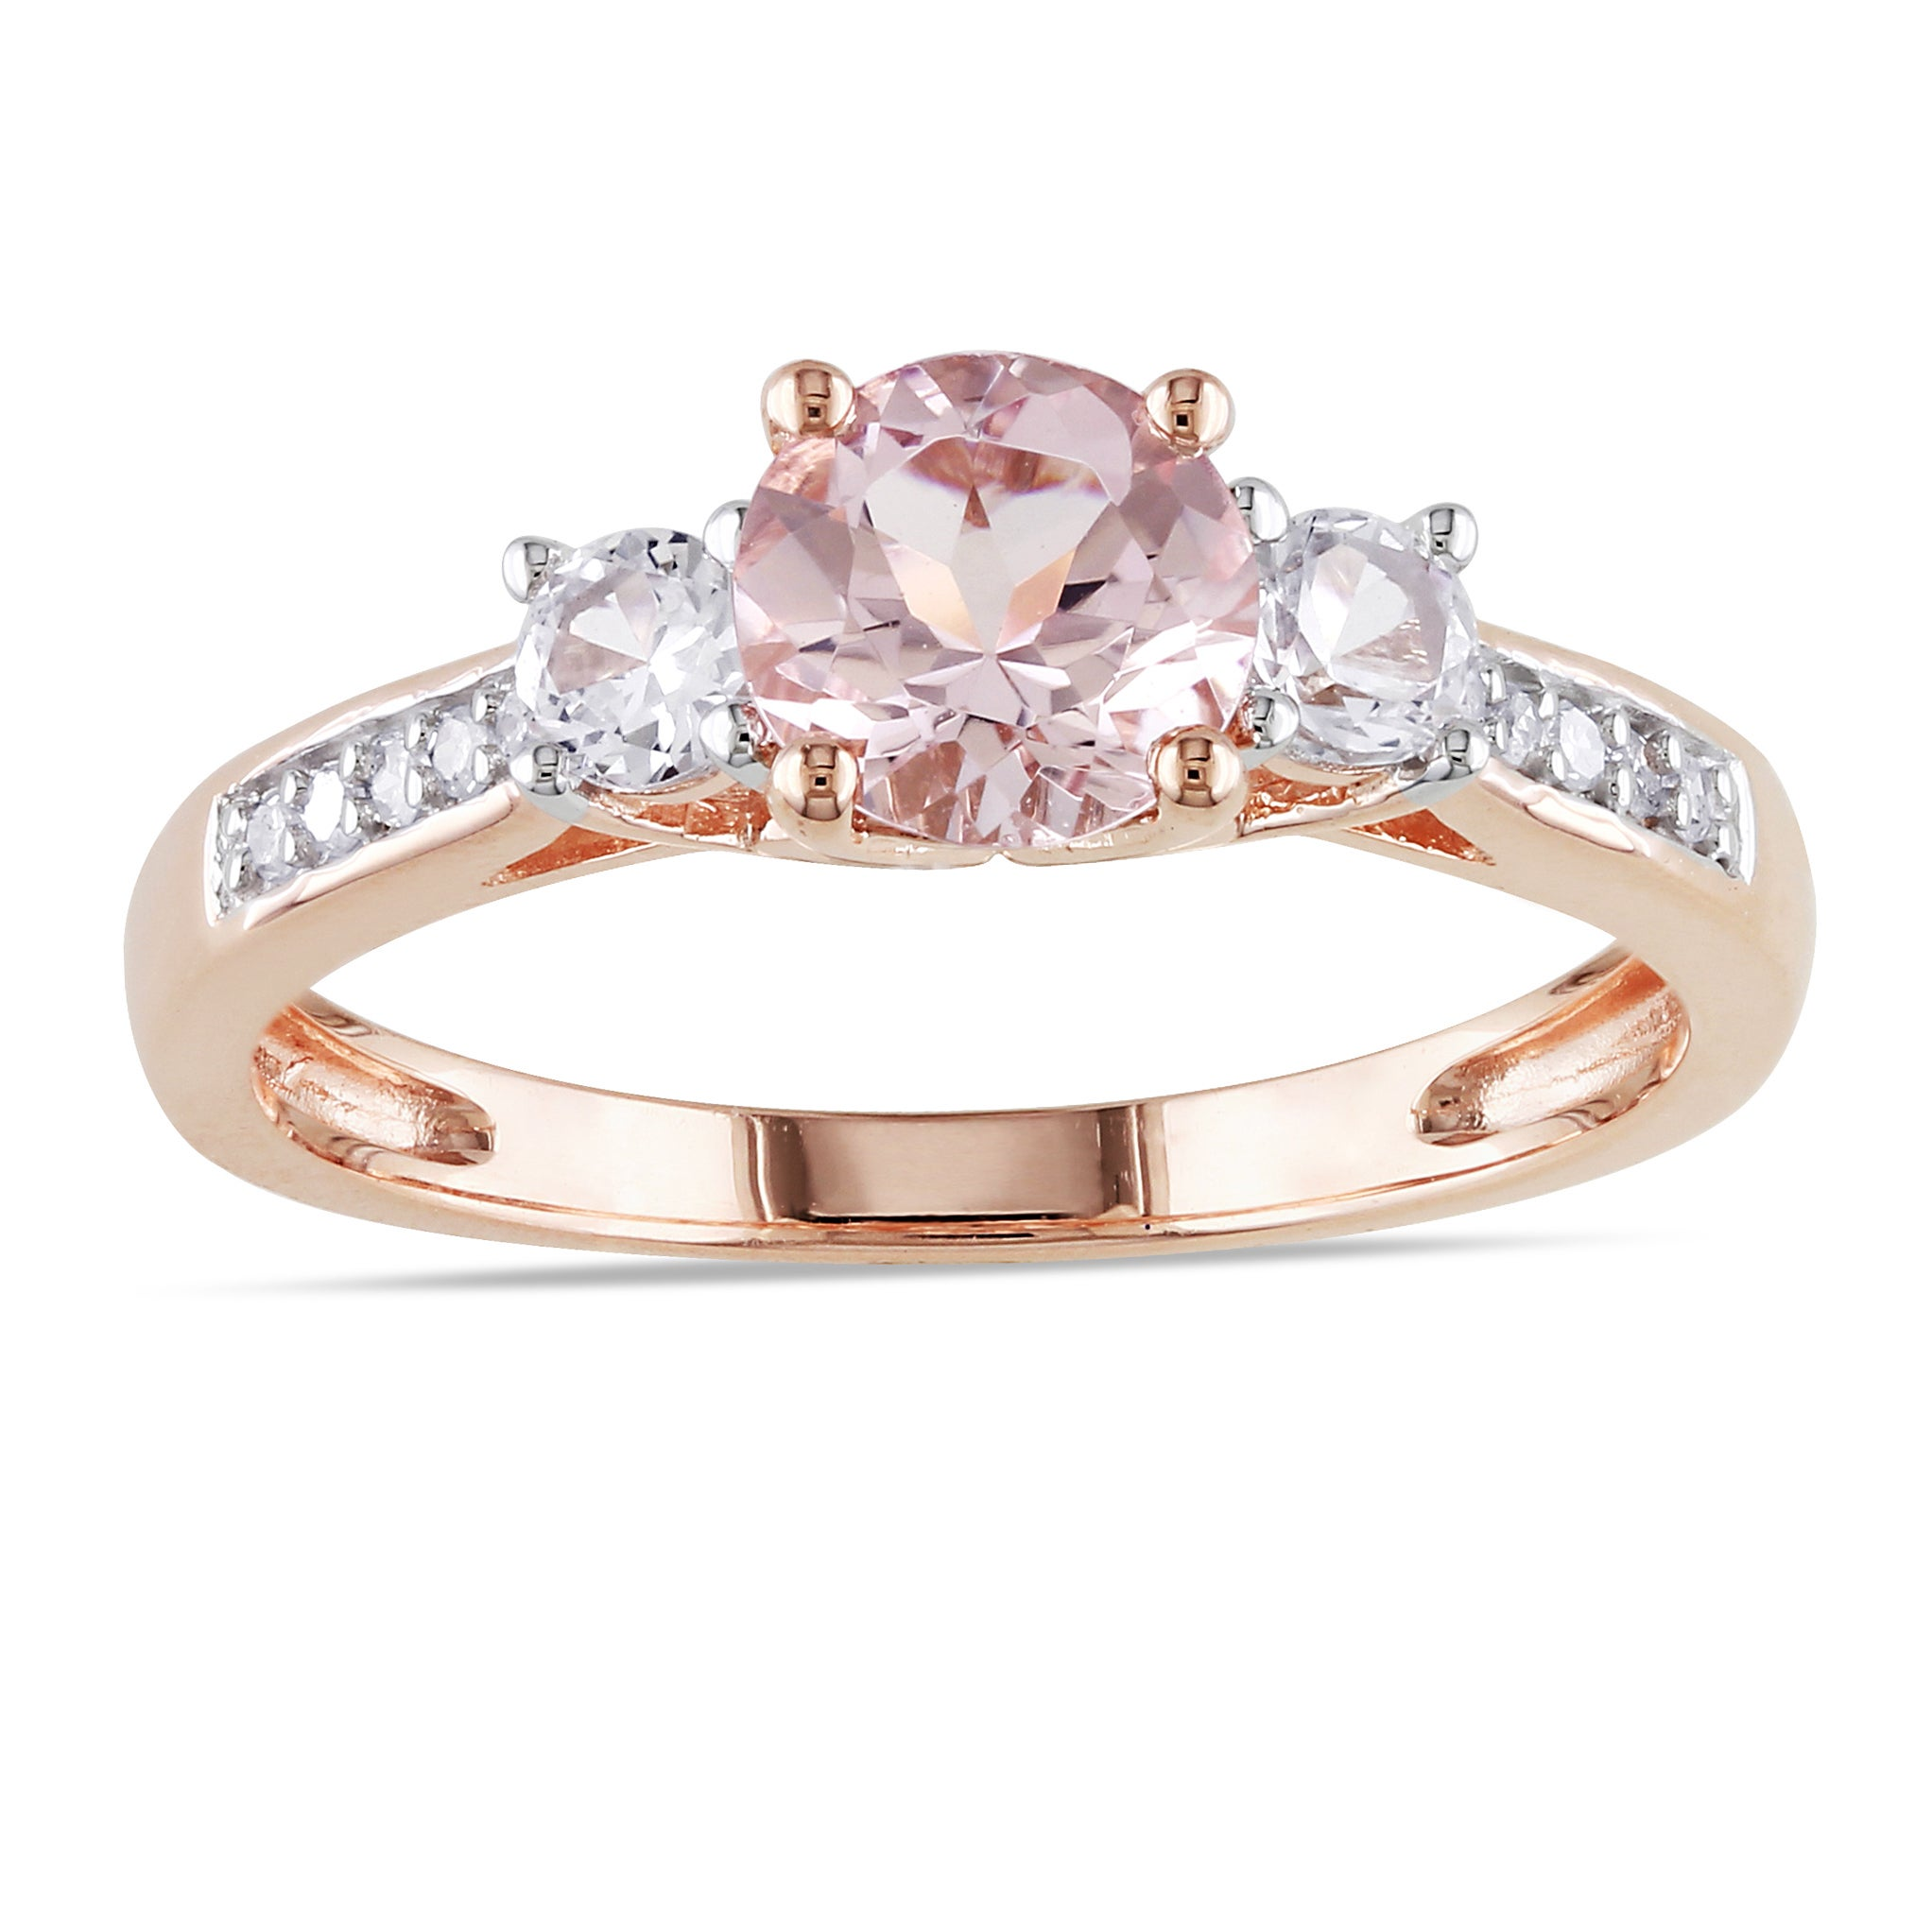 stone ring band wedding diamond engagement beautiful goes and rings picturesque three